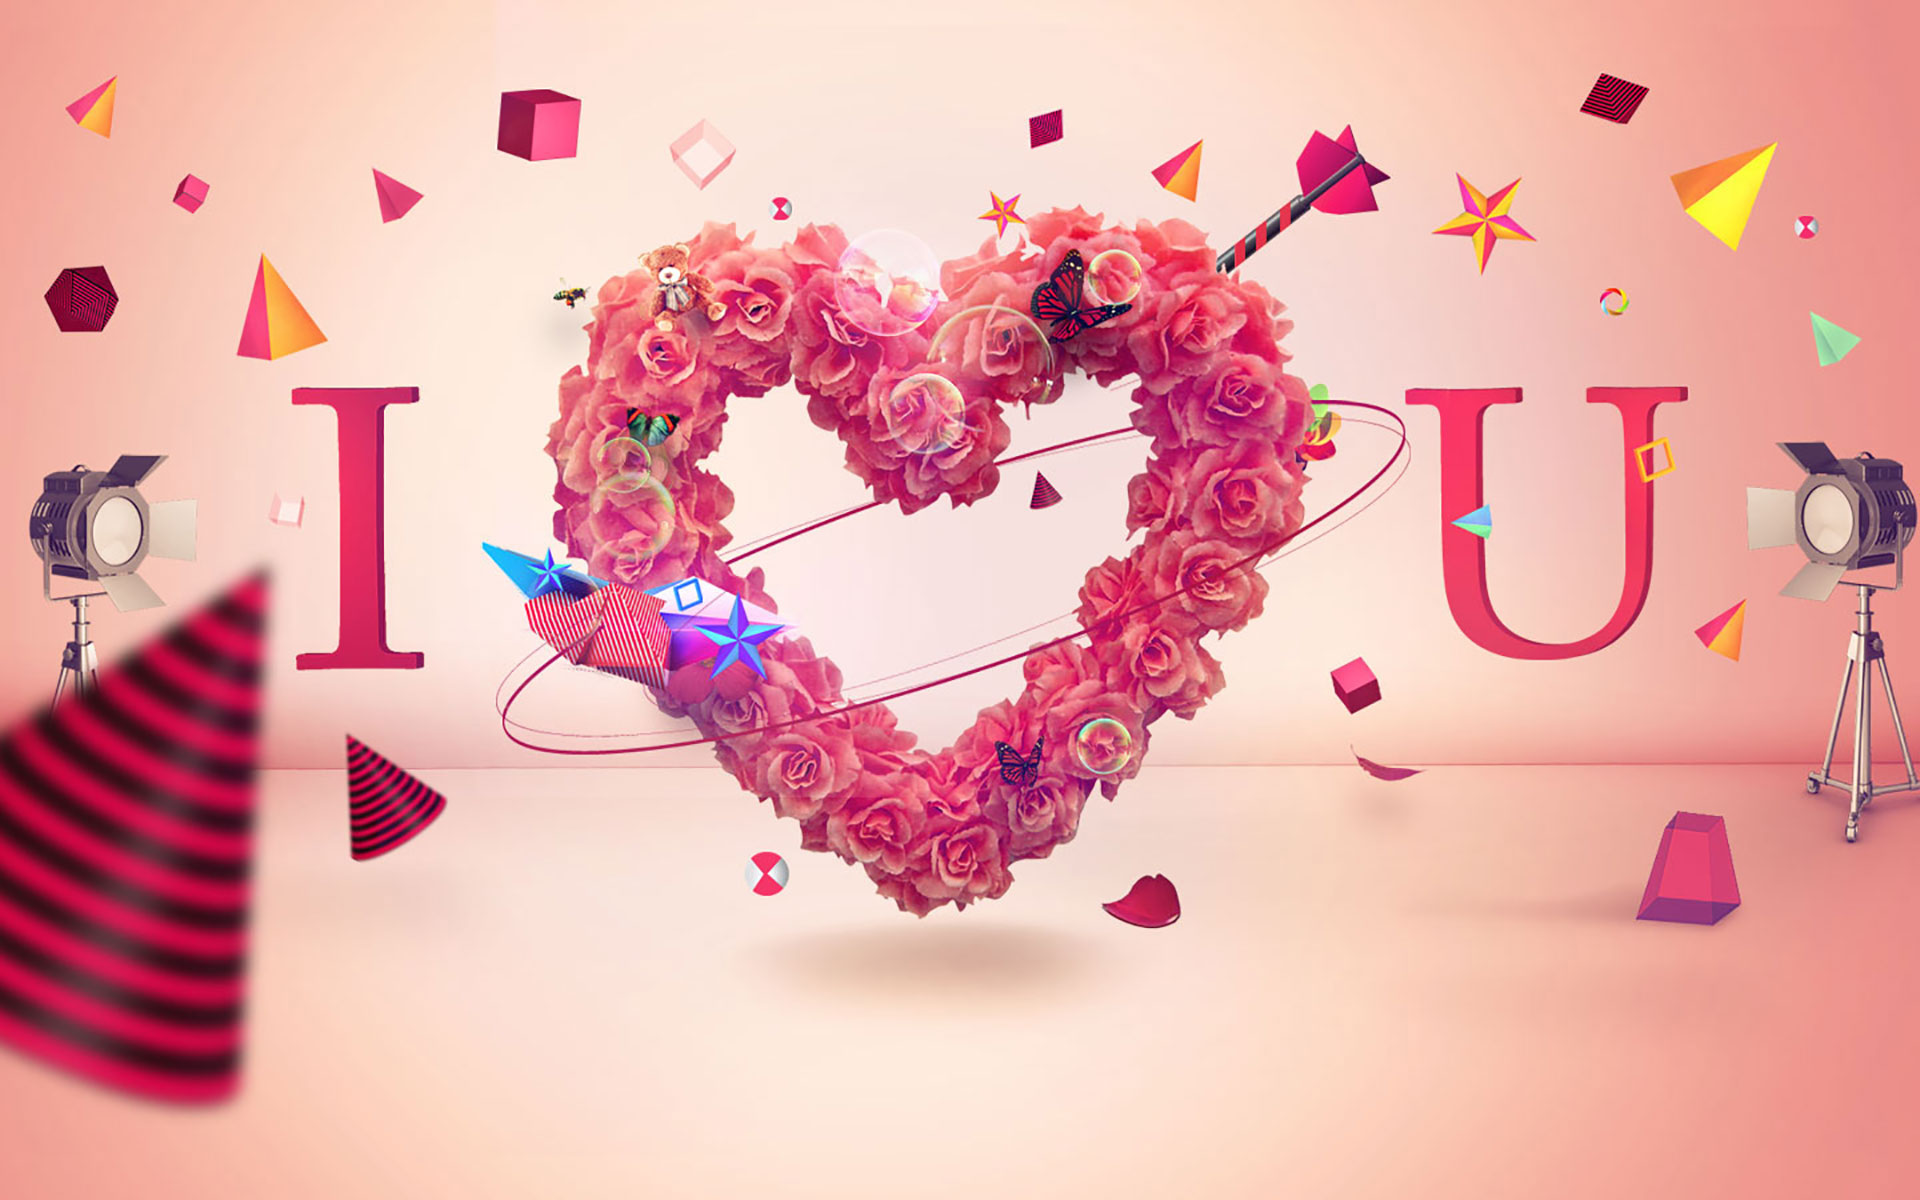 Love Wallpaper Hd Gallery : 25+ Free HD I Love You Wallpapers cute I Love You Images